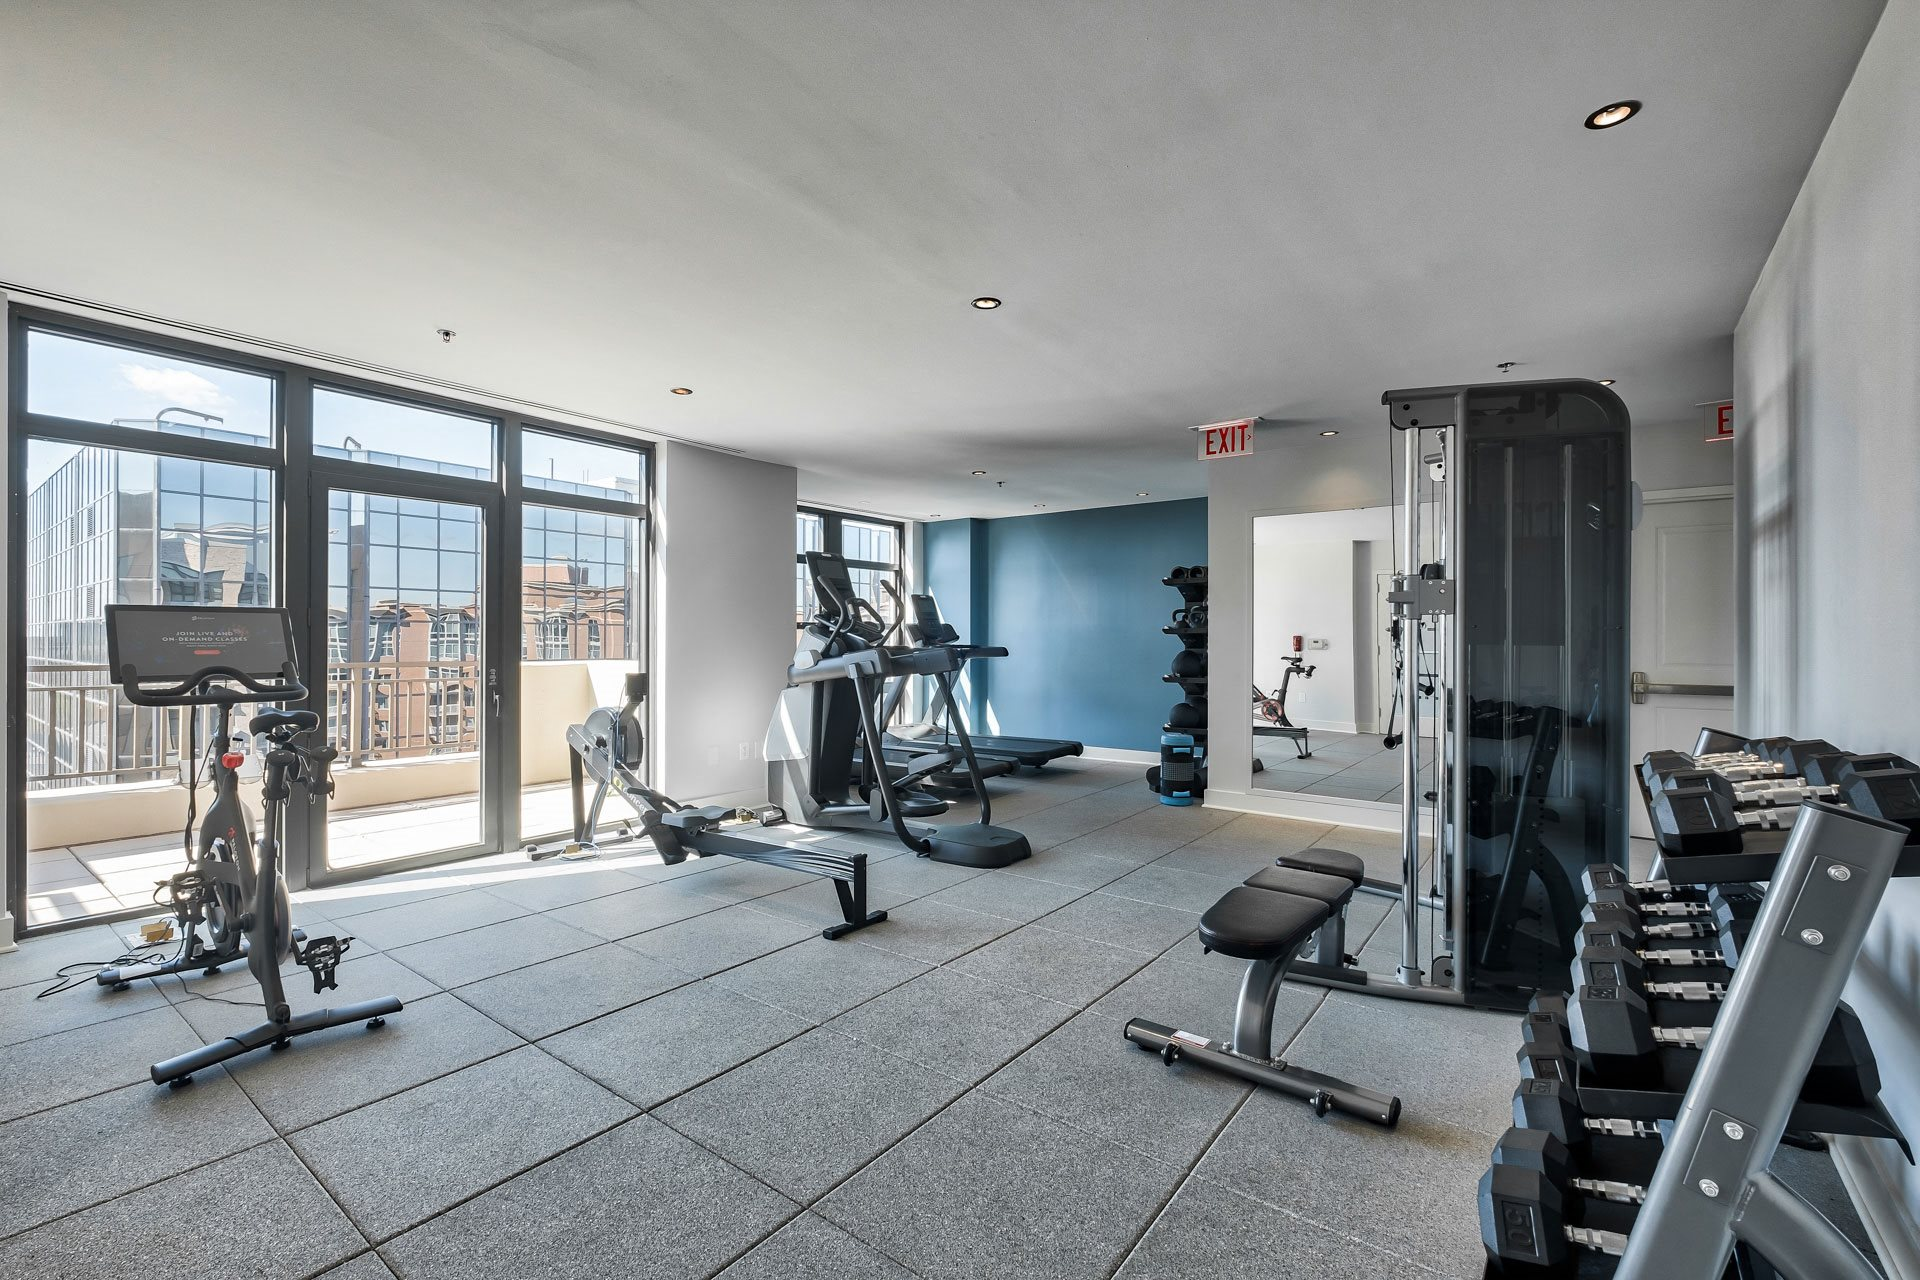 24-Hour Fitness Center With Free Weights at Halstead Tower by Windsor, Virginia, 22302